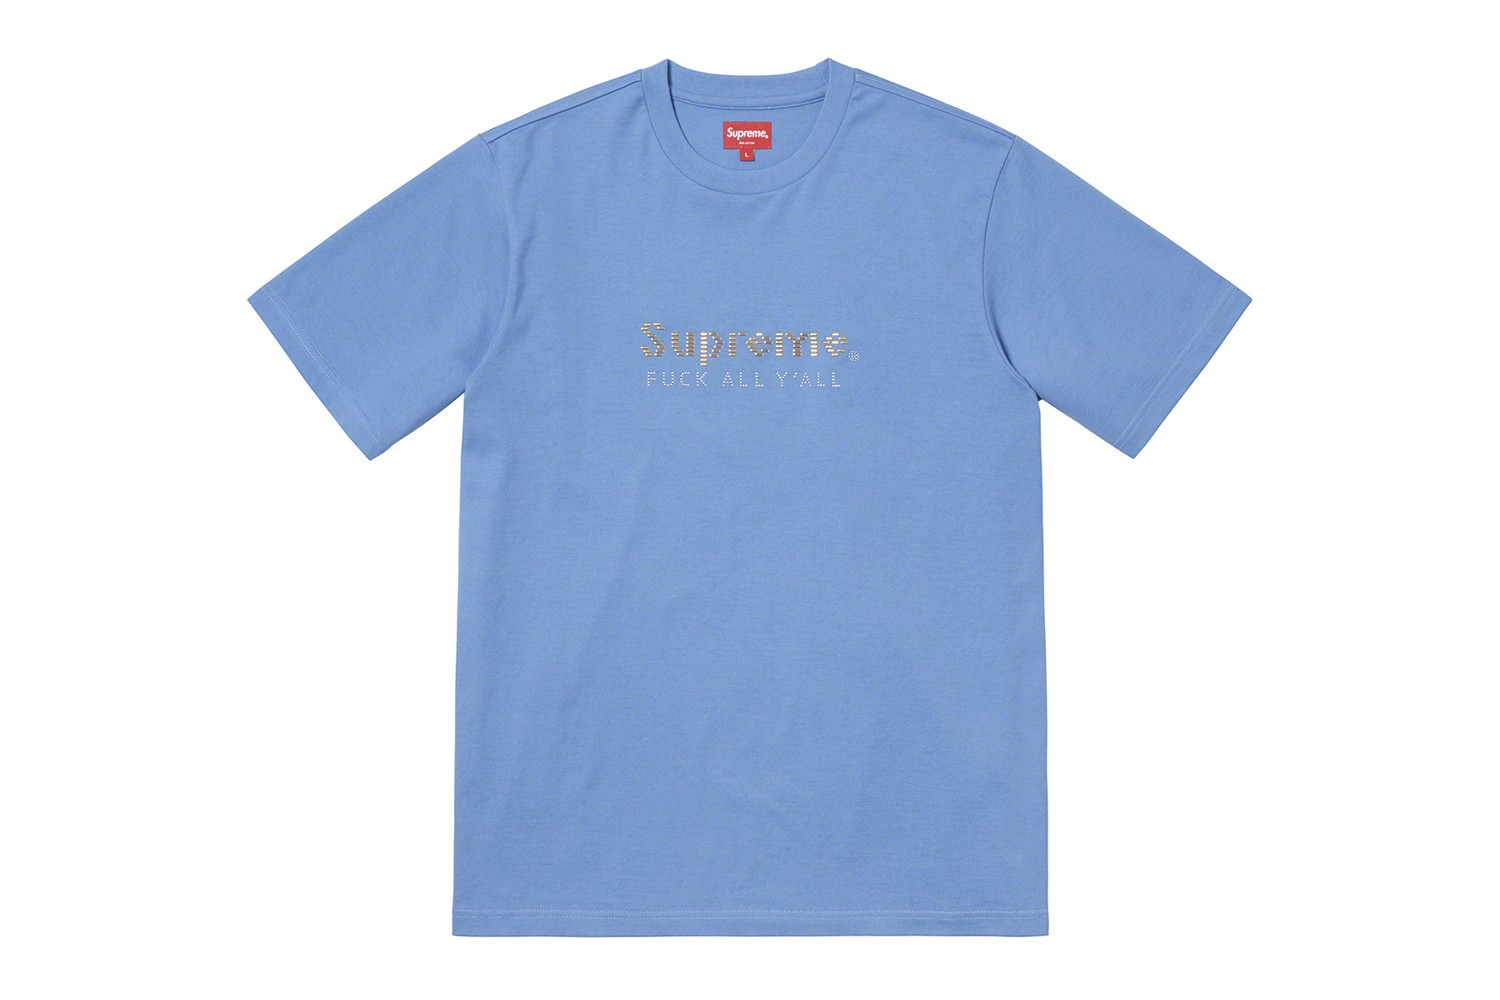 Supreme Spring Summer 19 Drop List for Week 13 Levi's Heron Preston Babylon LA Aimé Leon Dore BAPE Stone Island Lil Yachty KITH Tommy hilfiger Palace